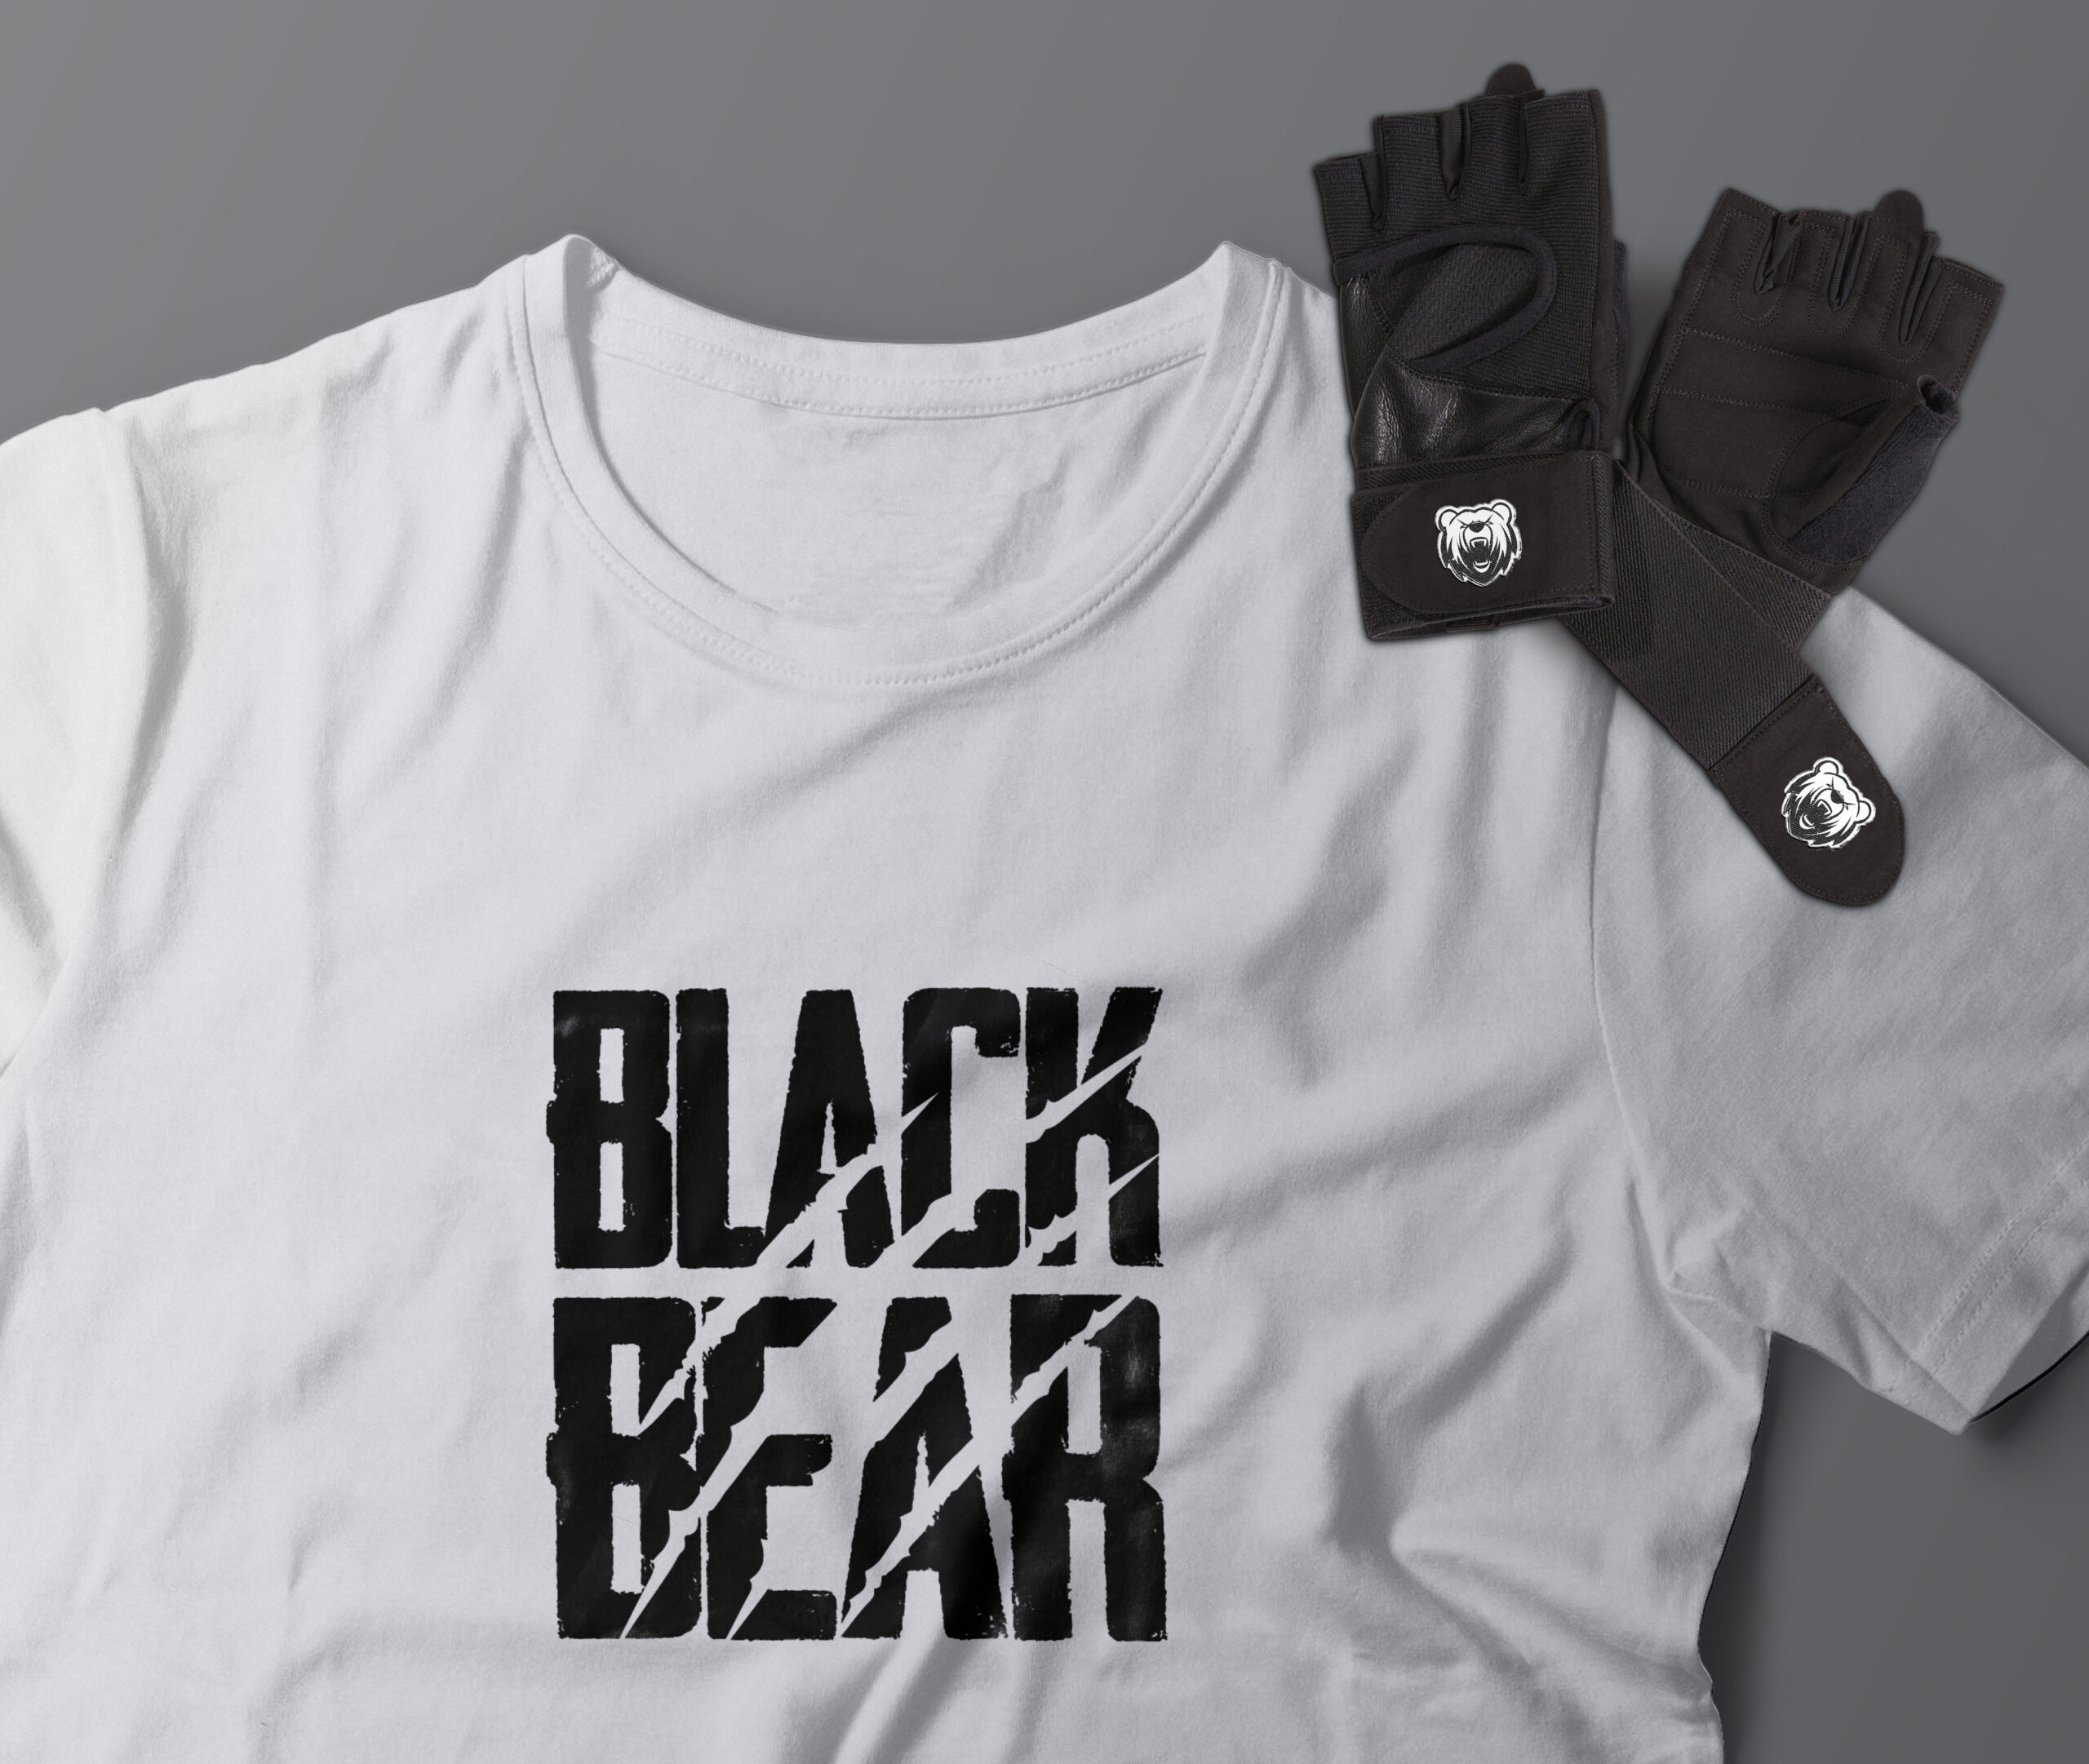 camiseta logo black bear